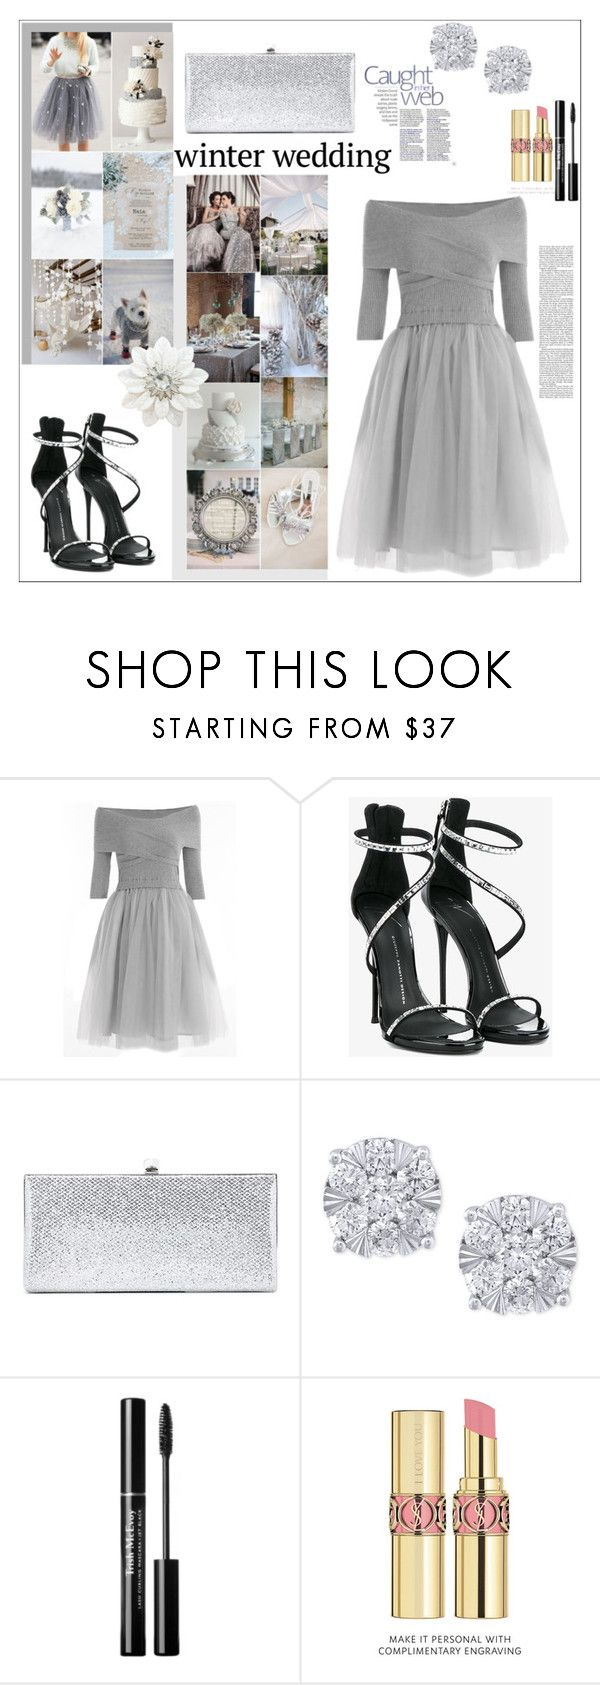 """Winter Wedding"" by anilia ❤ liked on Polyvore featuring Giuseppe Zanotti, Jimmy Choo, Effy Jewelry, Nicki Minaj, Yves Saint Laurent and winterwedding"